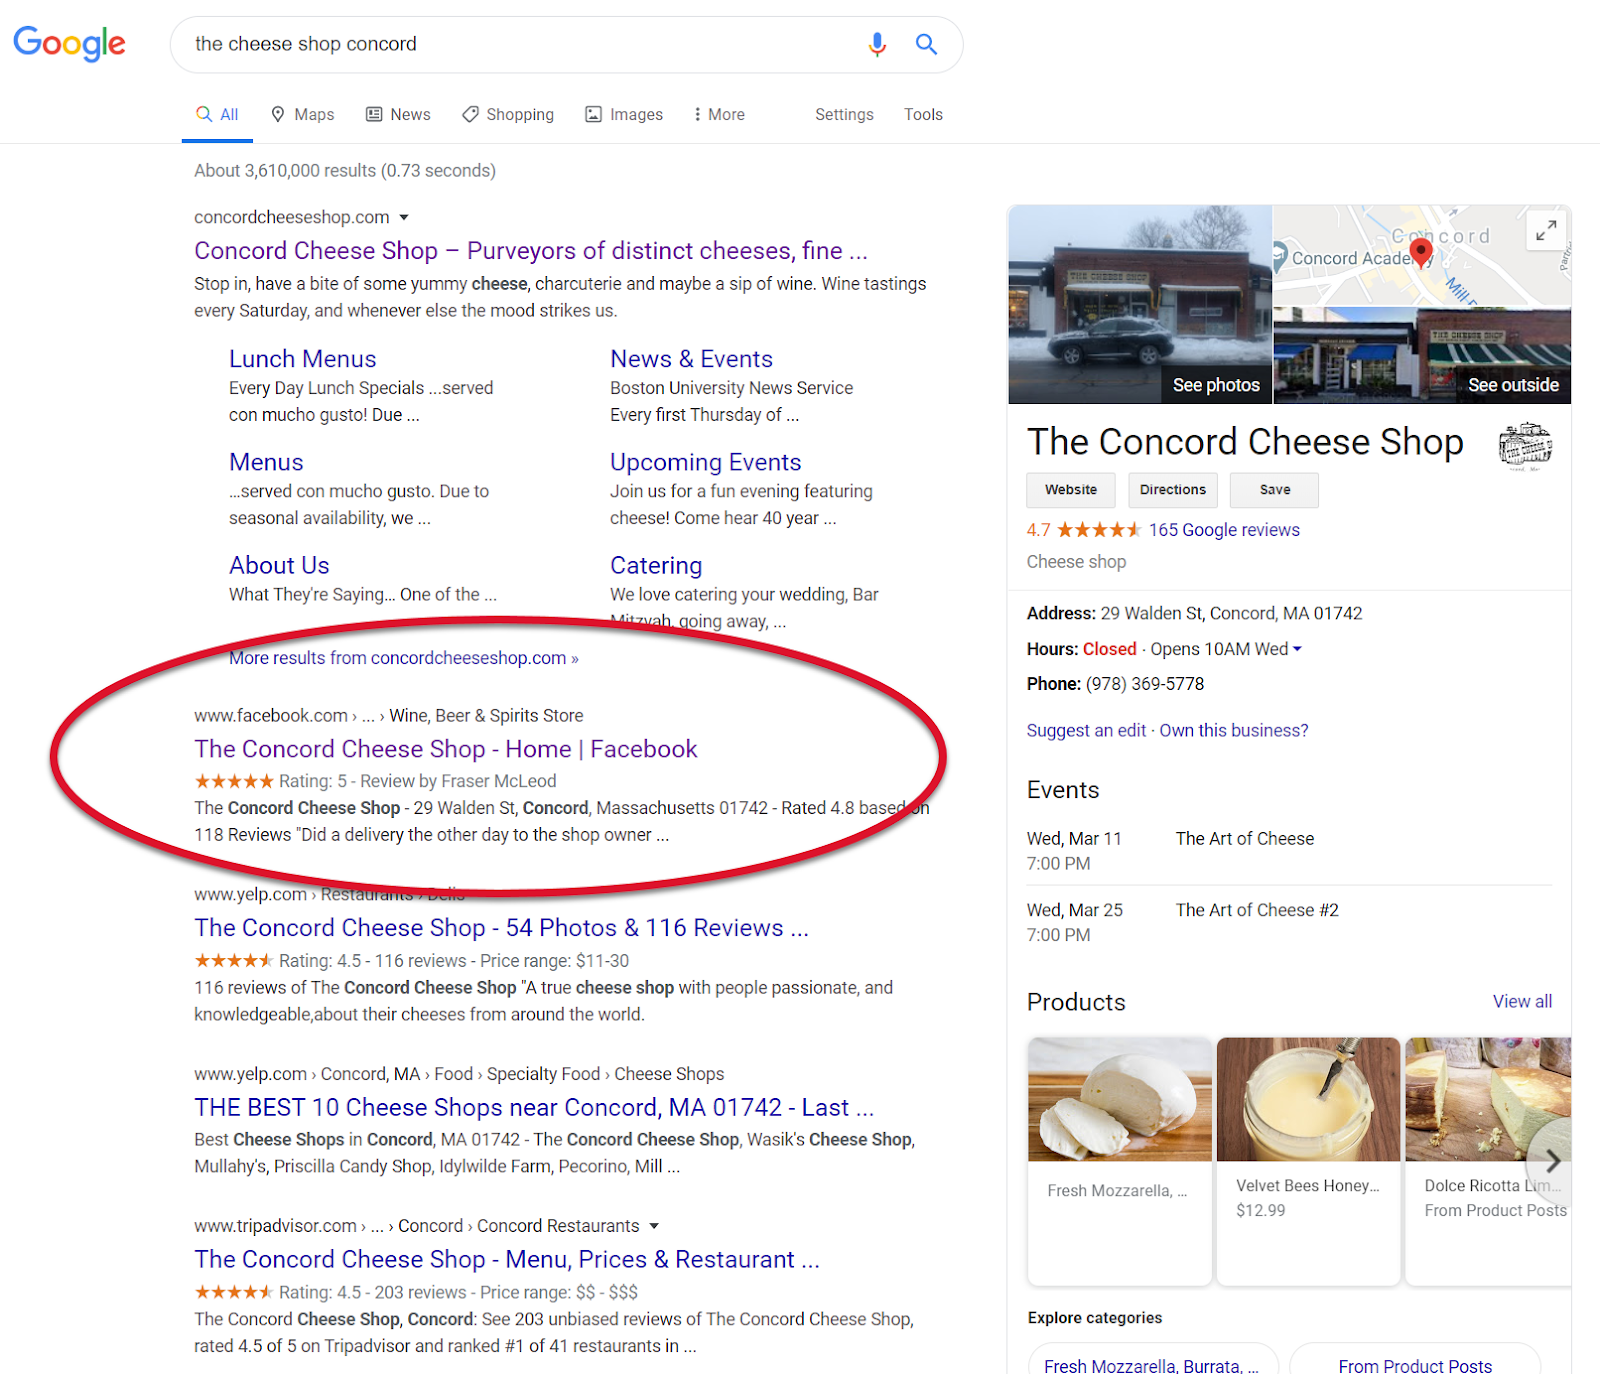 Example of how a business's pages show up up in a typical online search - 1st is website, 2nd is Facebook business page and 3rd is Yelp